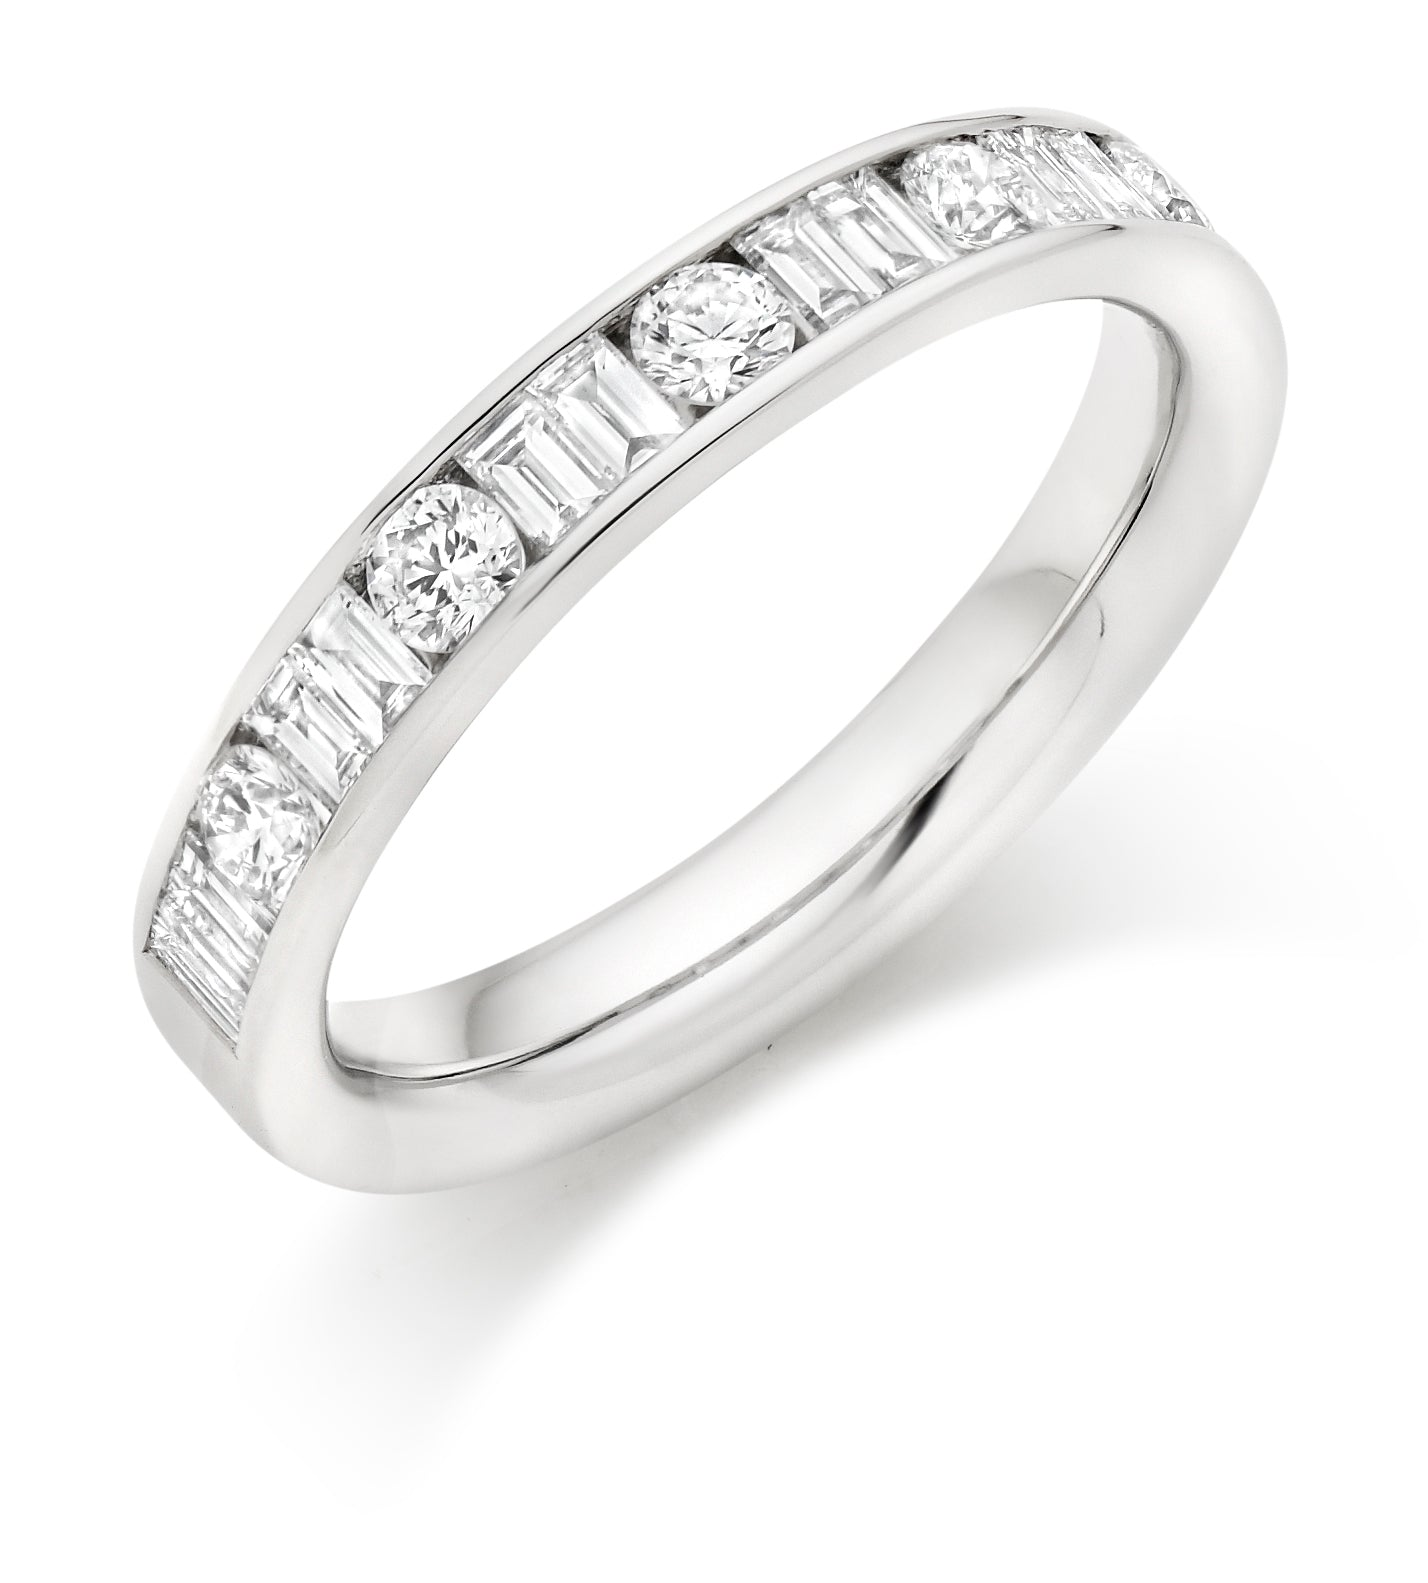 0.75ct Round Brilliant Cut and Baguette Cut Diamonds Wedding Ring - (Home Try-On)